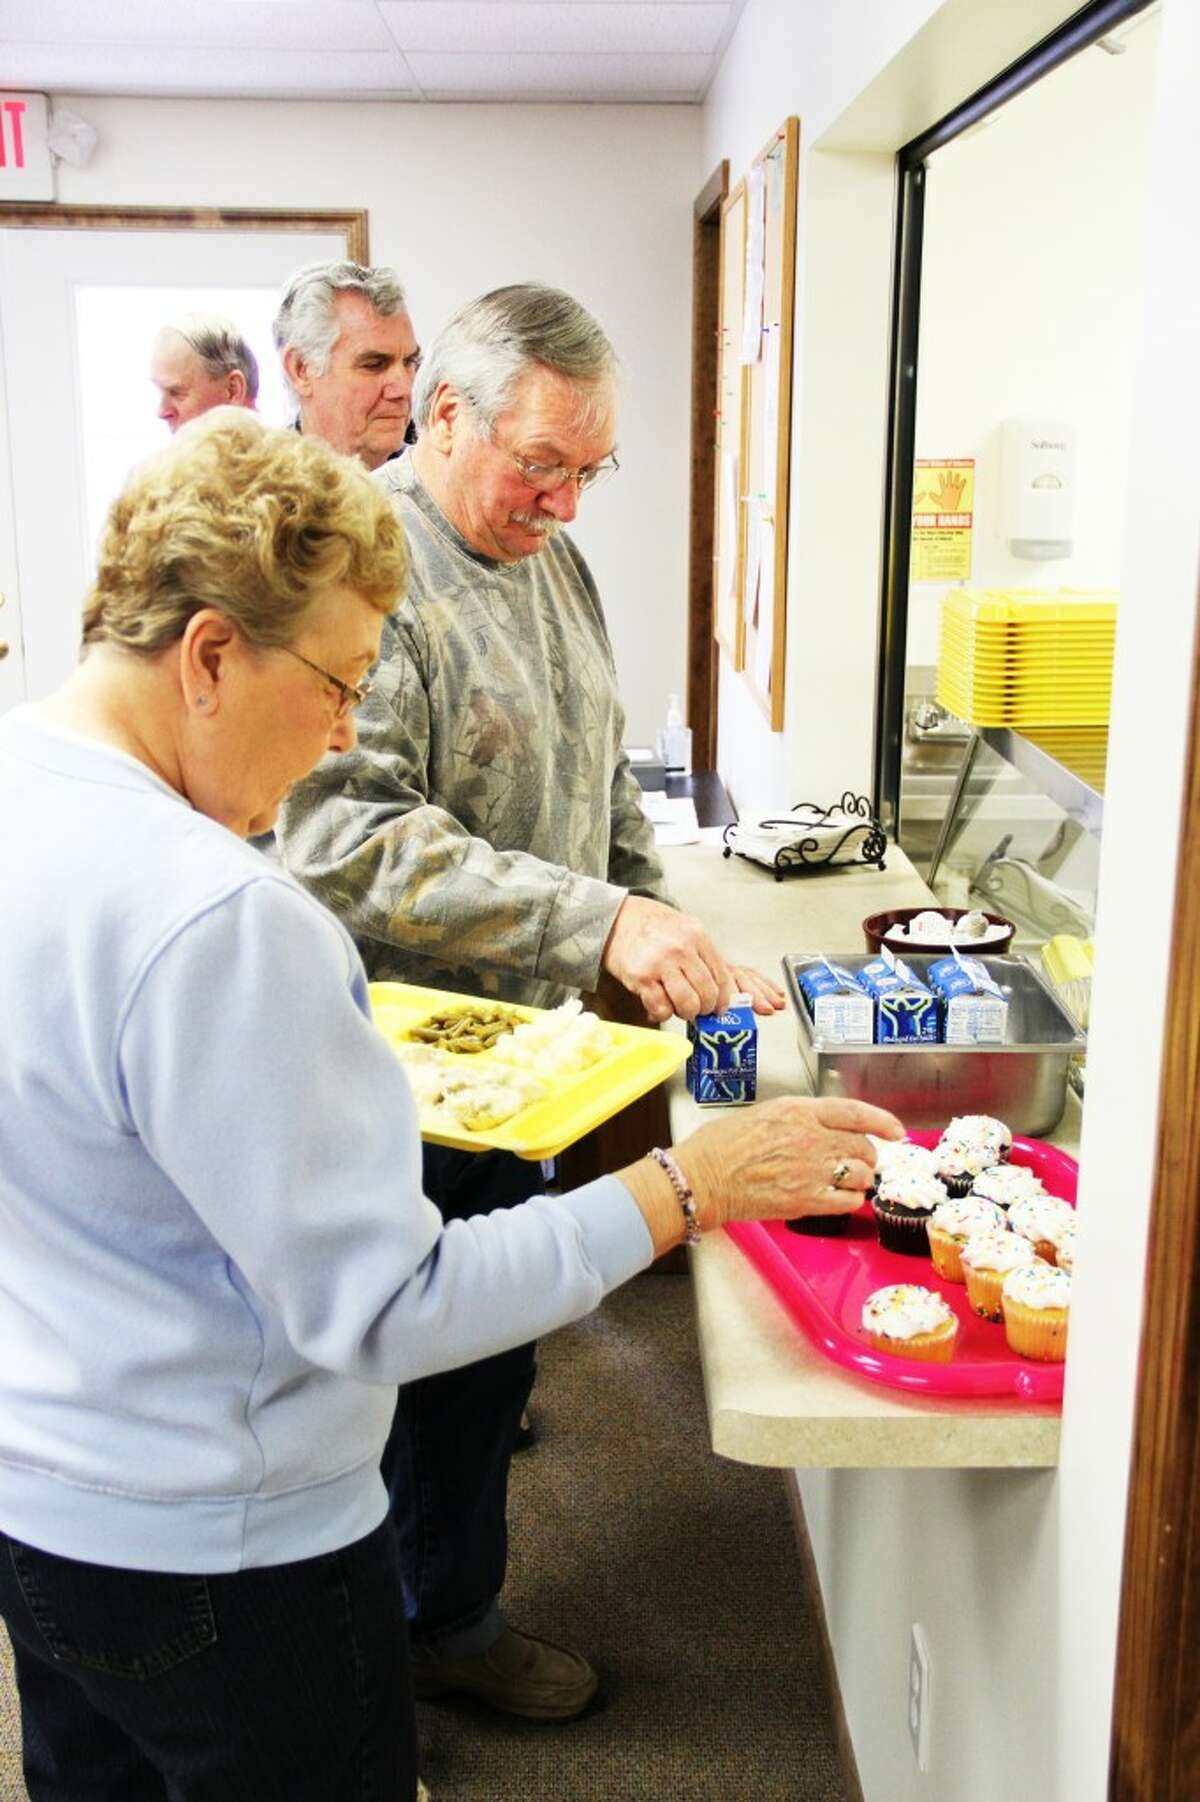 MORE INTERACTION: Staff and seniors are able to interact more with the meals program being held in a local location. (Herald Review photo/Sarah Neubecker)